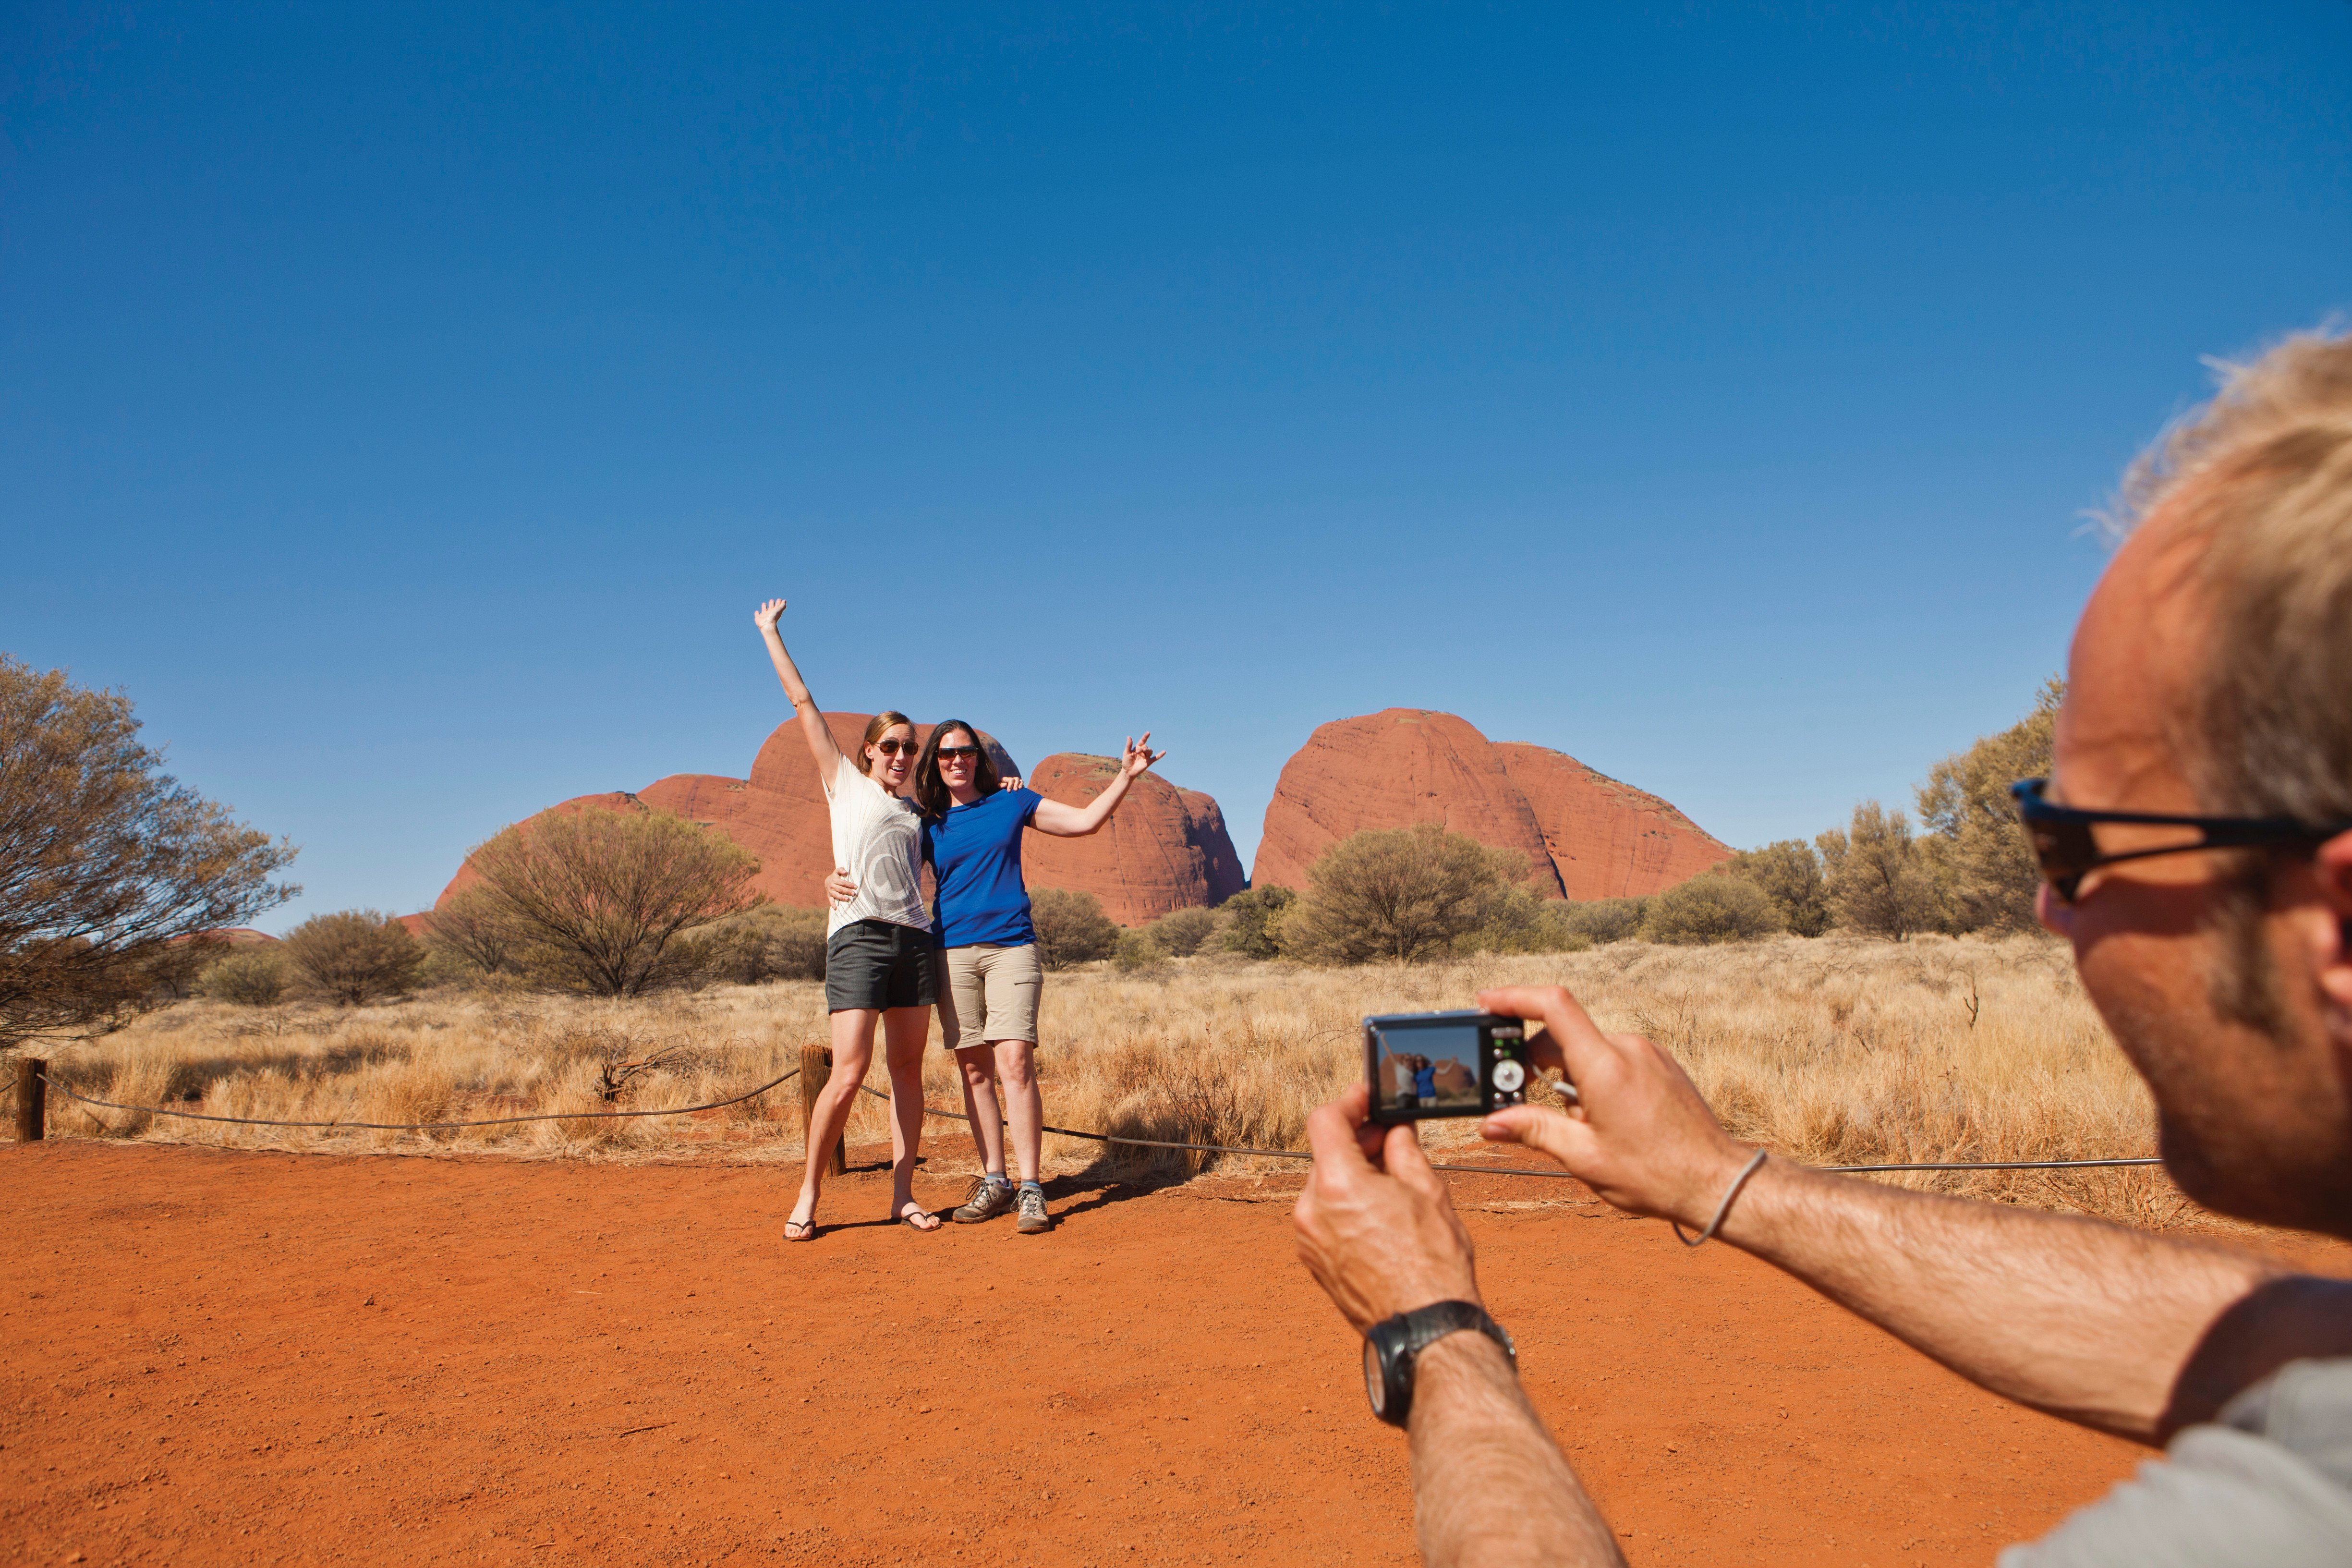 taking a photo in the outback